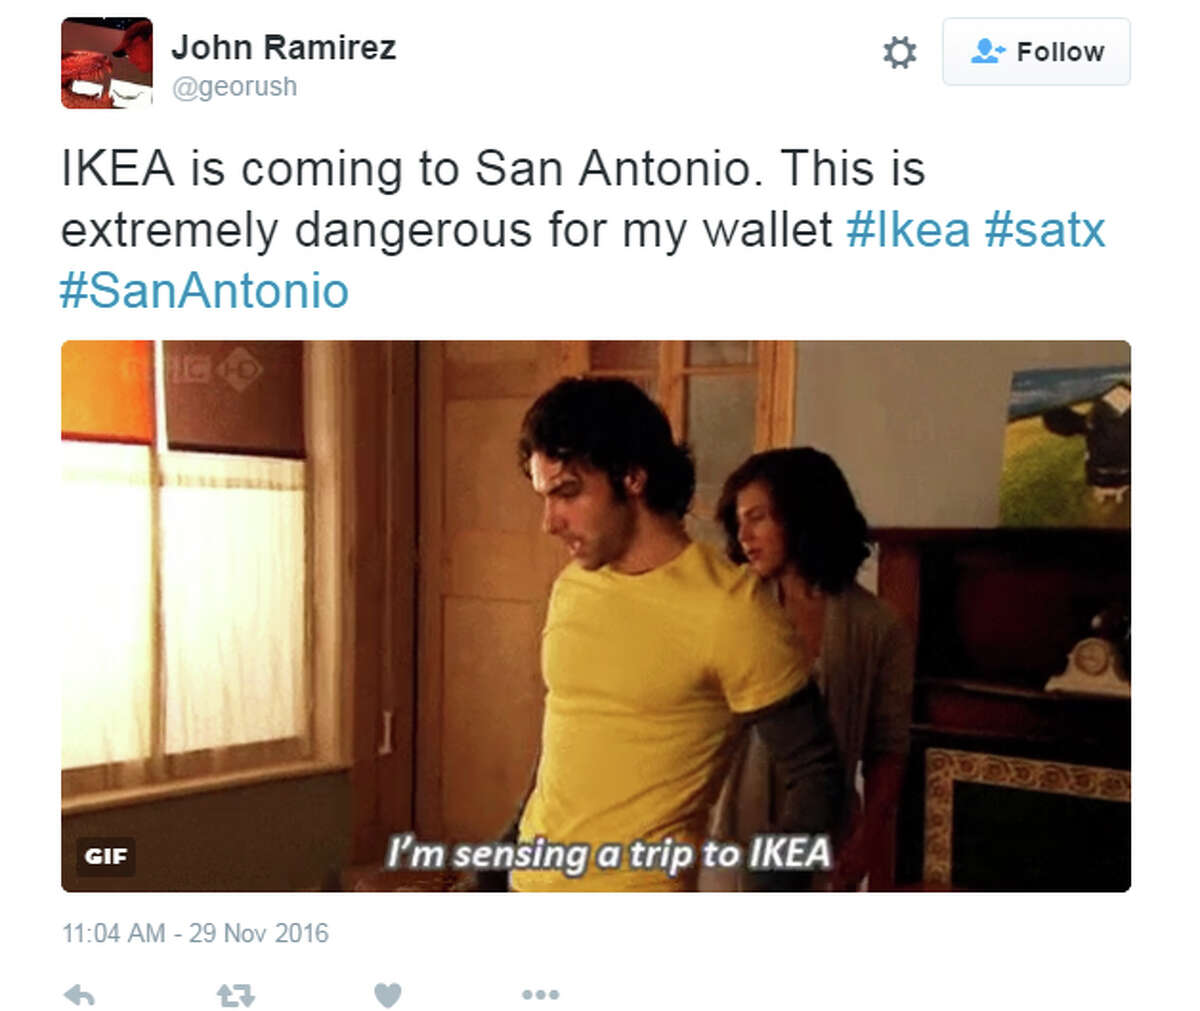 """Tweet: """"IKEA is coming to San Antonio. This is extremely dangerous for my wallet"""""""